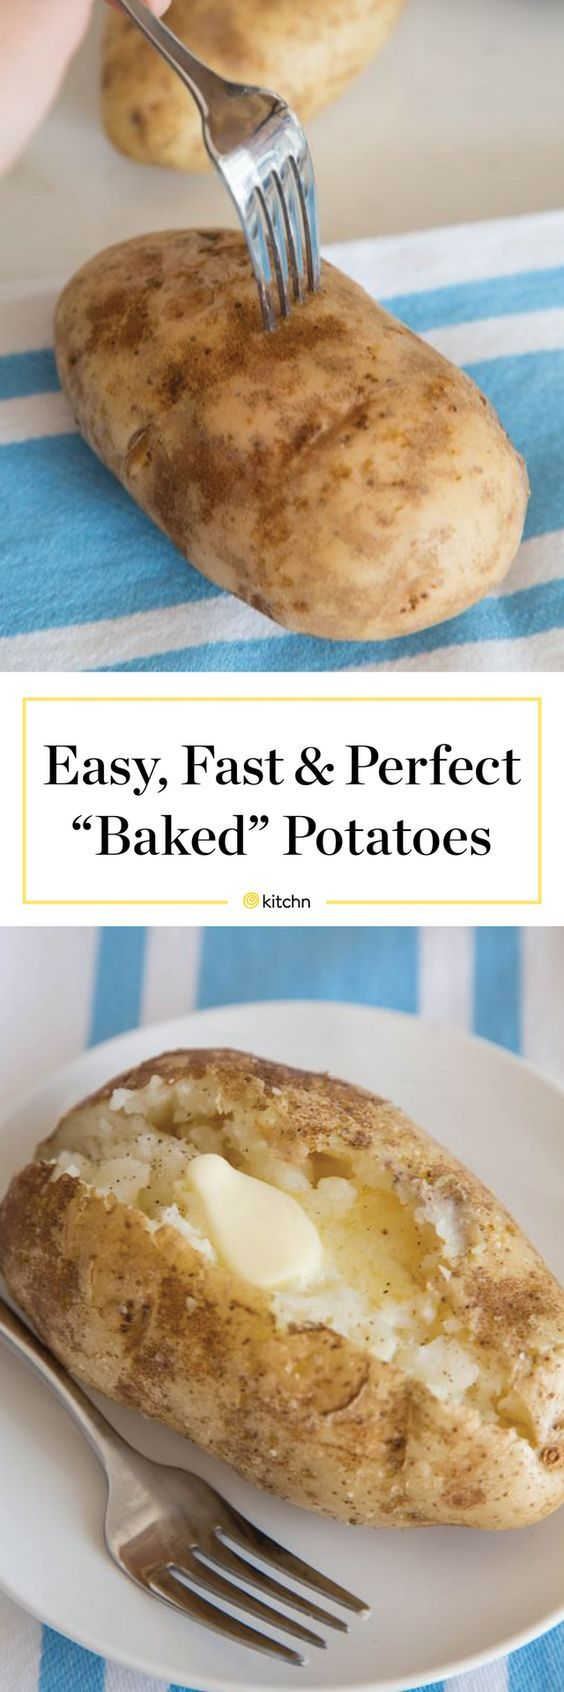 How To Make (better) Baked Potatoes in the Microwave Recipe. It's EASY to bake a potato in the microwave. This healthy side is one of the easiest recipes to make if you're trying the whole30 diet this January. Whole 30 now allows potatoes, so eat up! Tips like this are great for quick and easy weeknight meals and side dishes to get dinner on the table FAST.